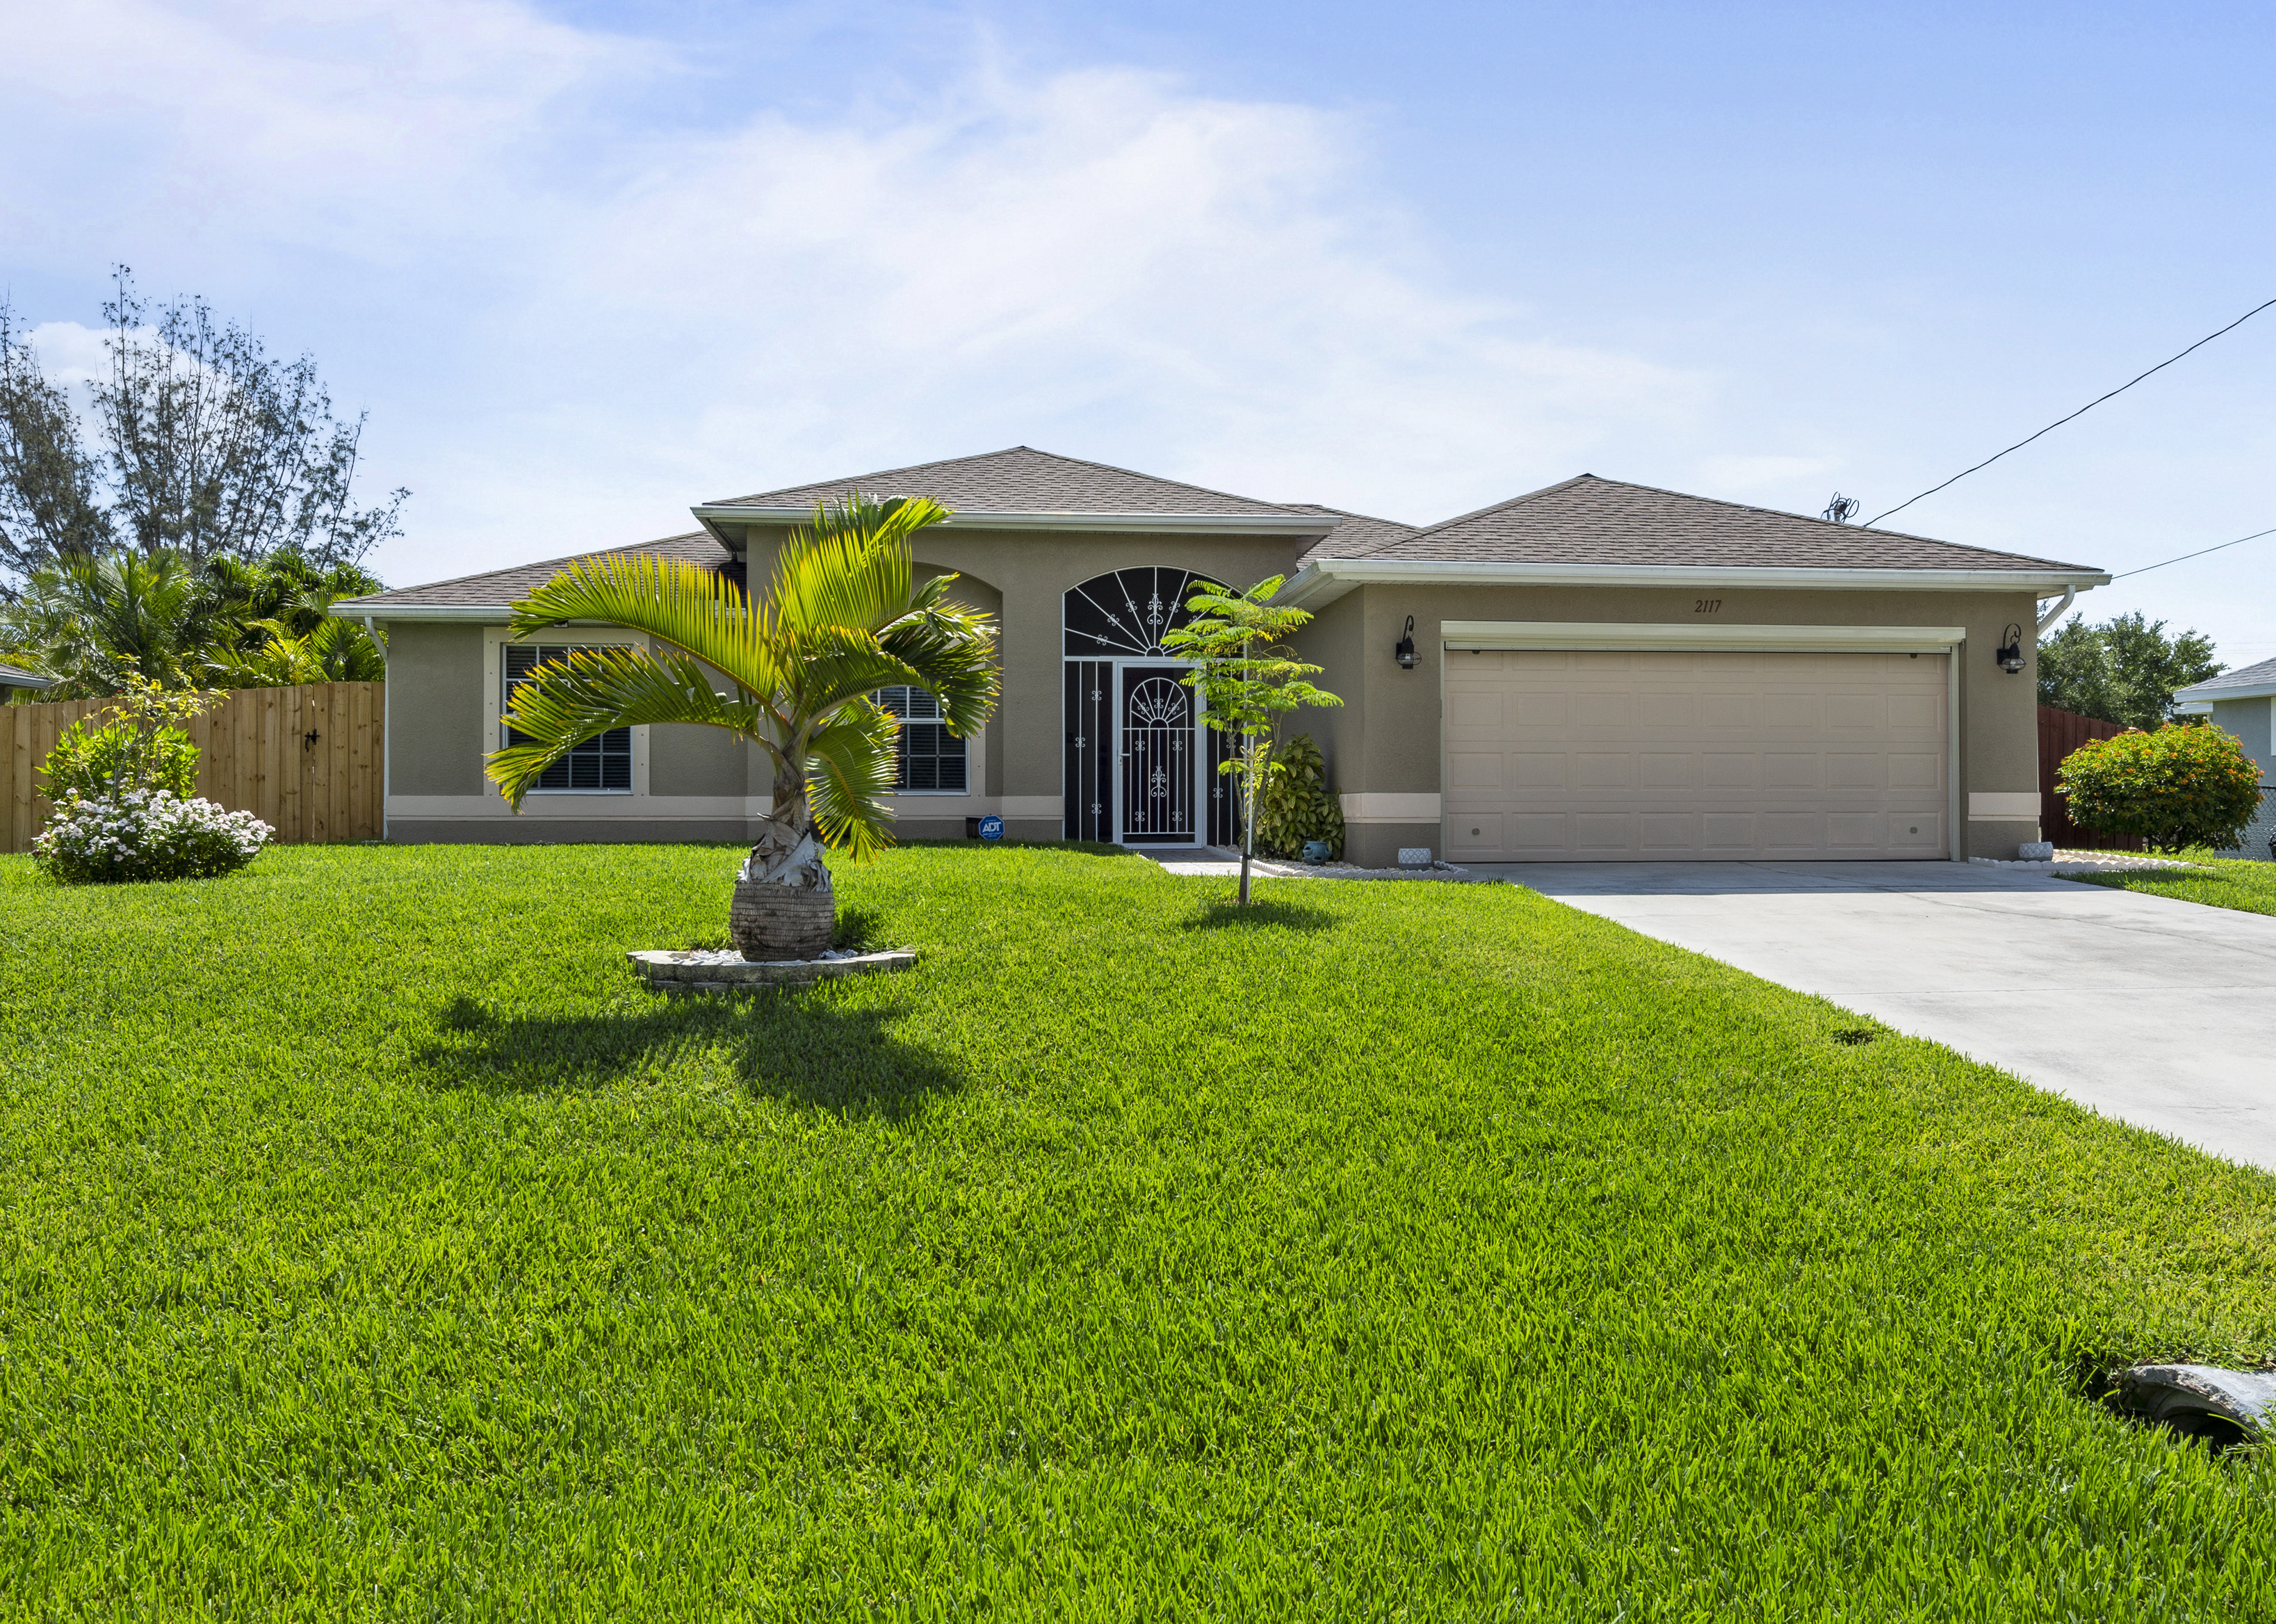 House for sale Cape Coral Southwest